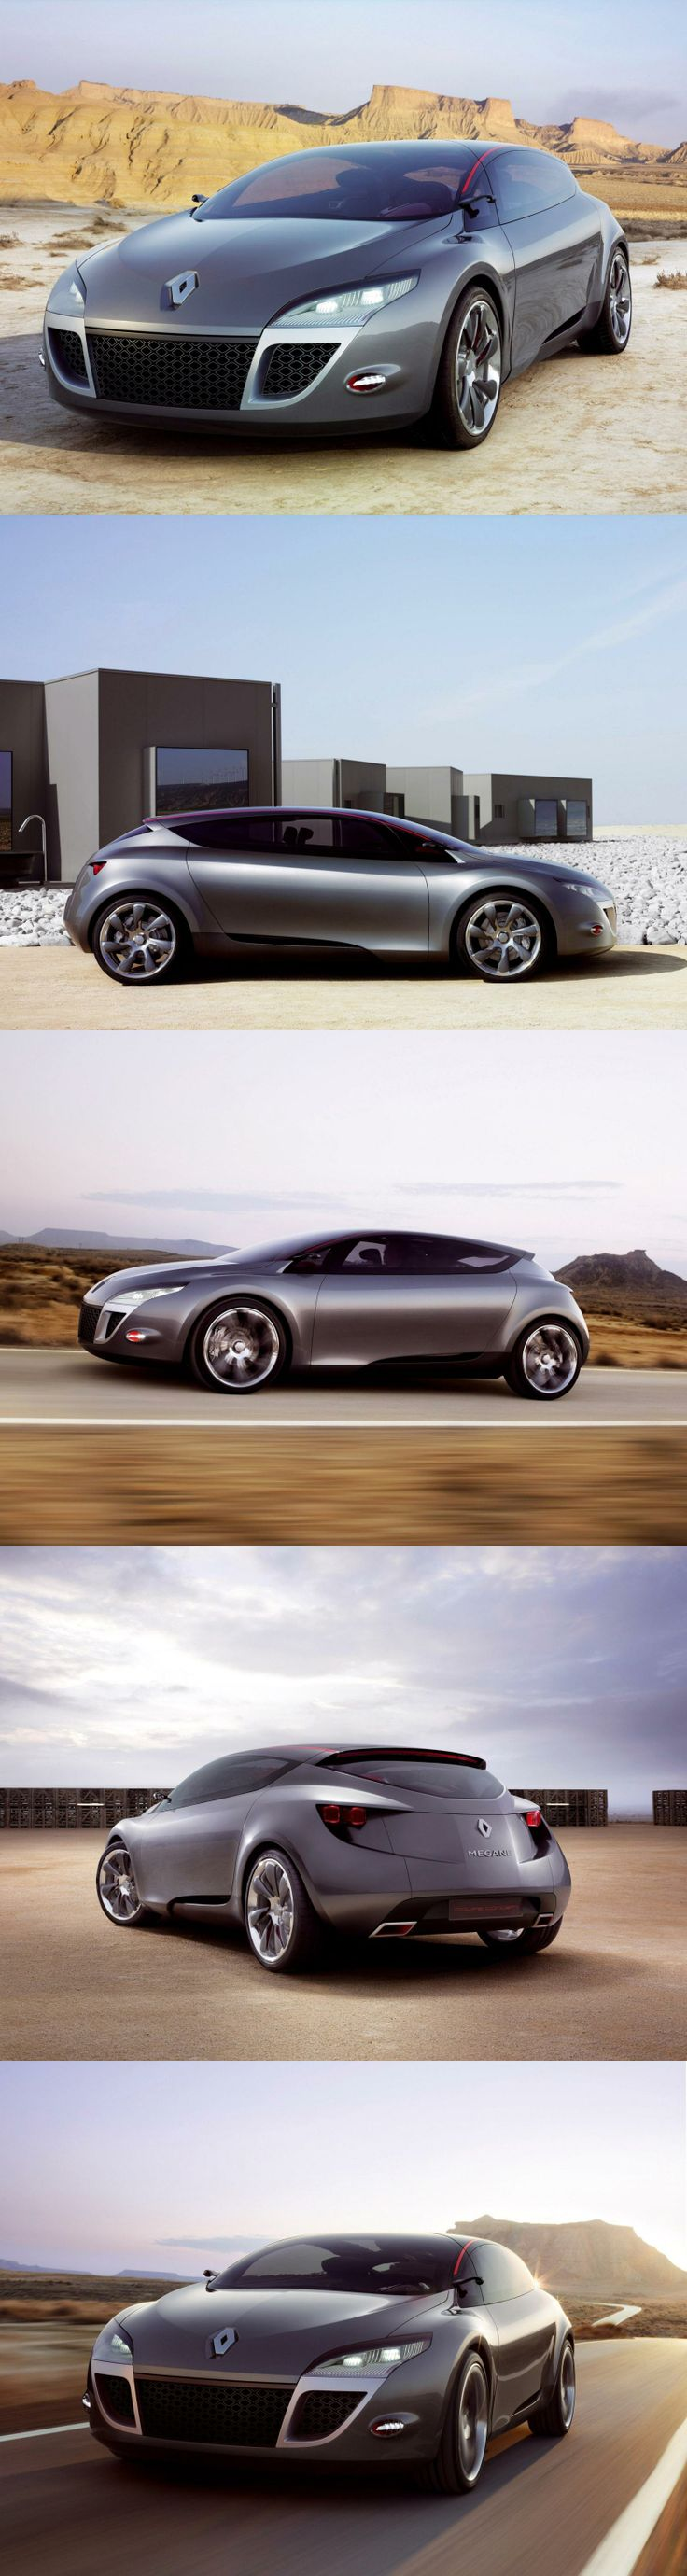 2008 Renault Megane Coupe Concept https://www.amazon.co.uk/Baby-Car-Mirror-Shatterproof-Installation/dp/B06XHG6SSY